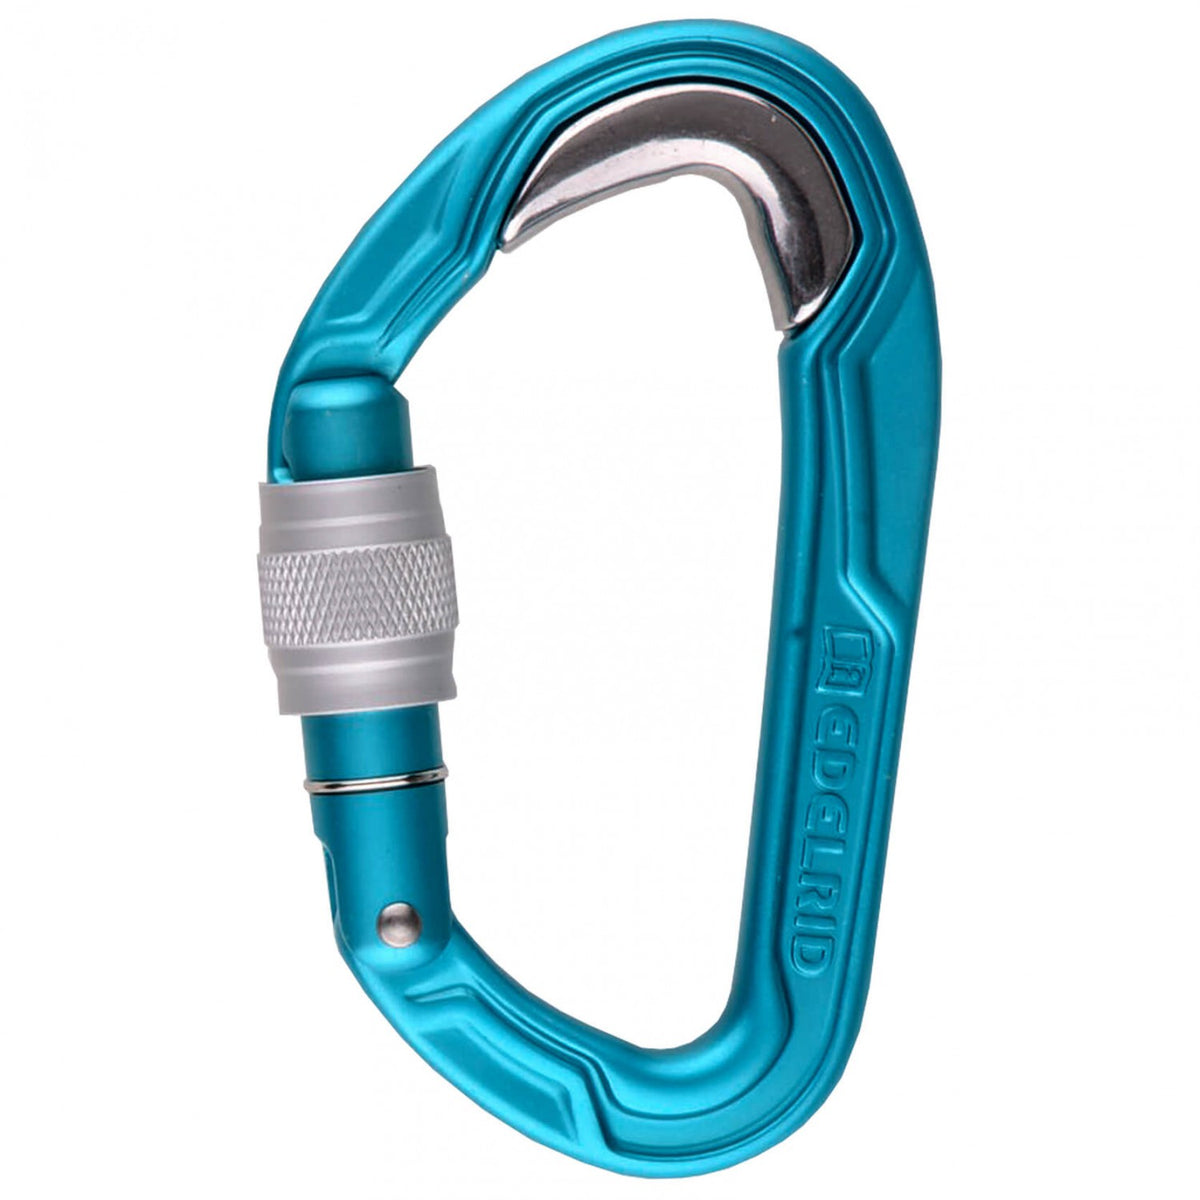 Edelrid Bulletproof Screw carabiner, in blue colour with silver screw